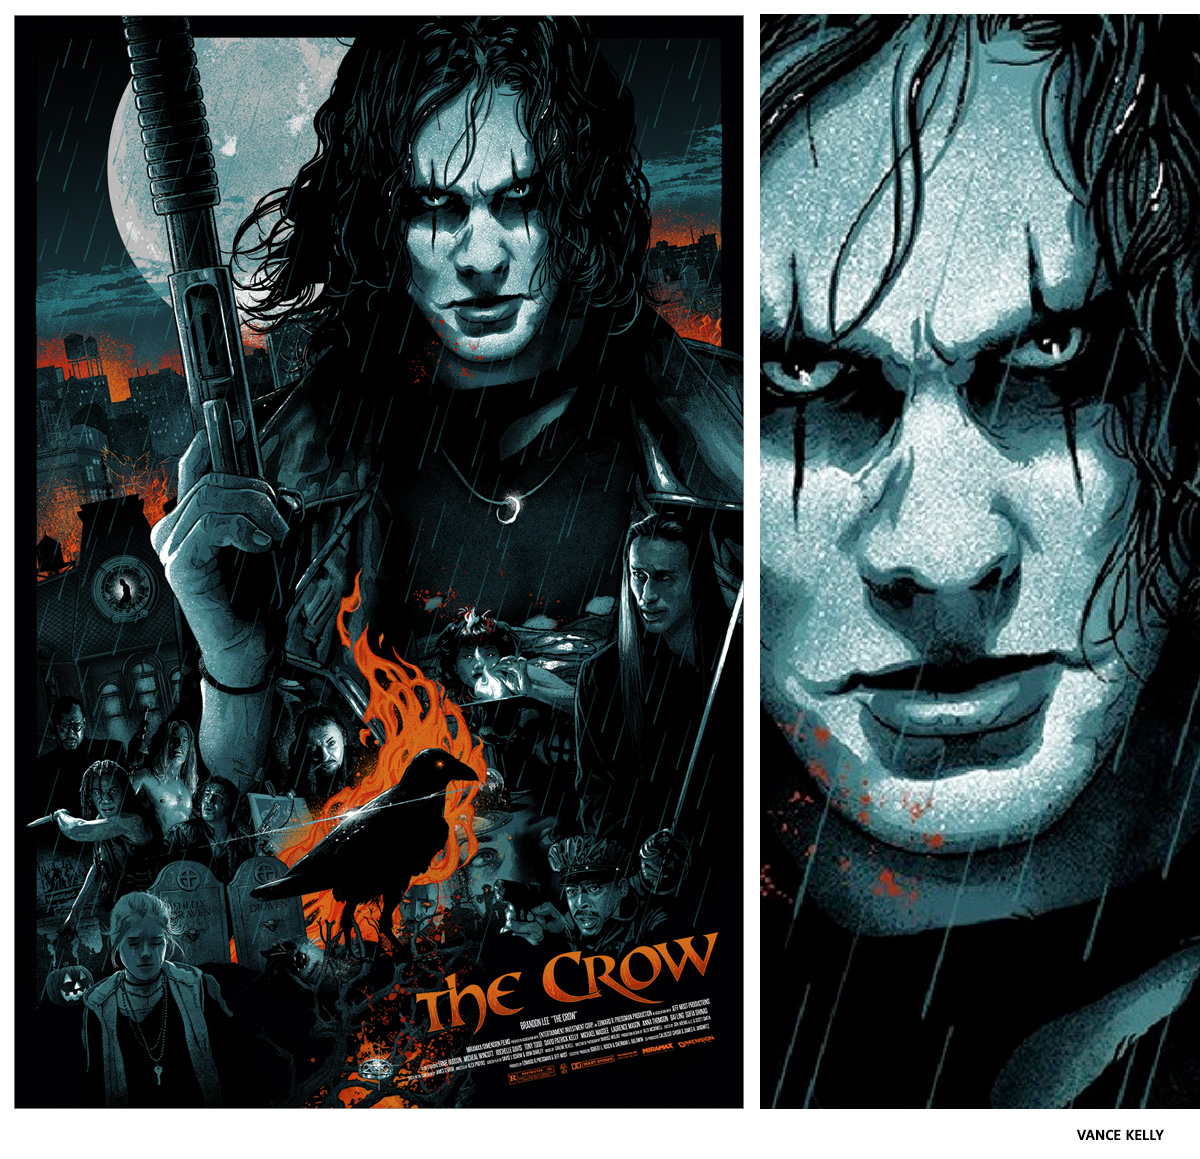 The Crow par Vance Kelly sérigraphie affiche